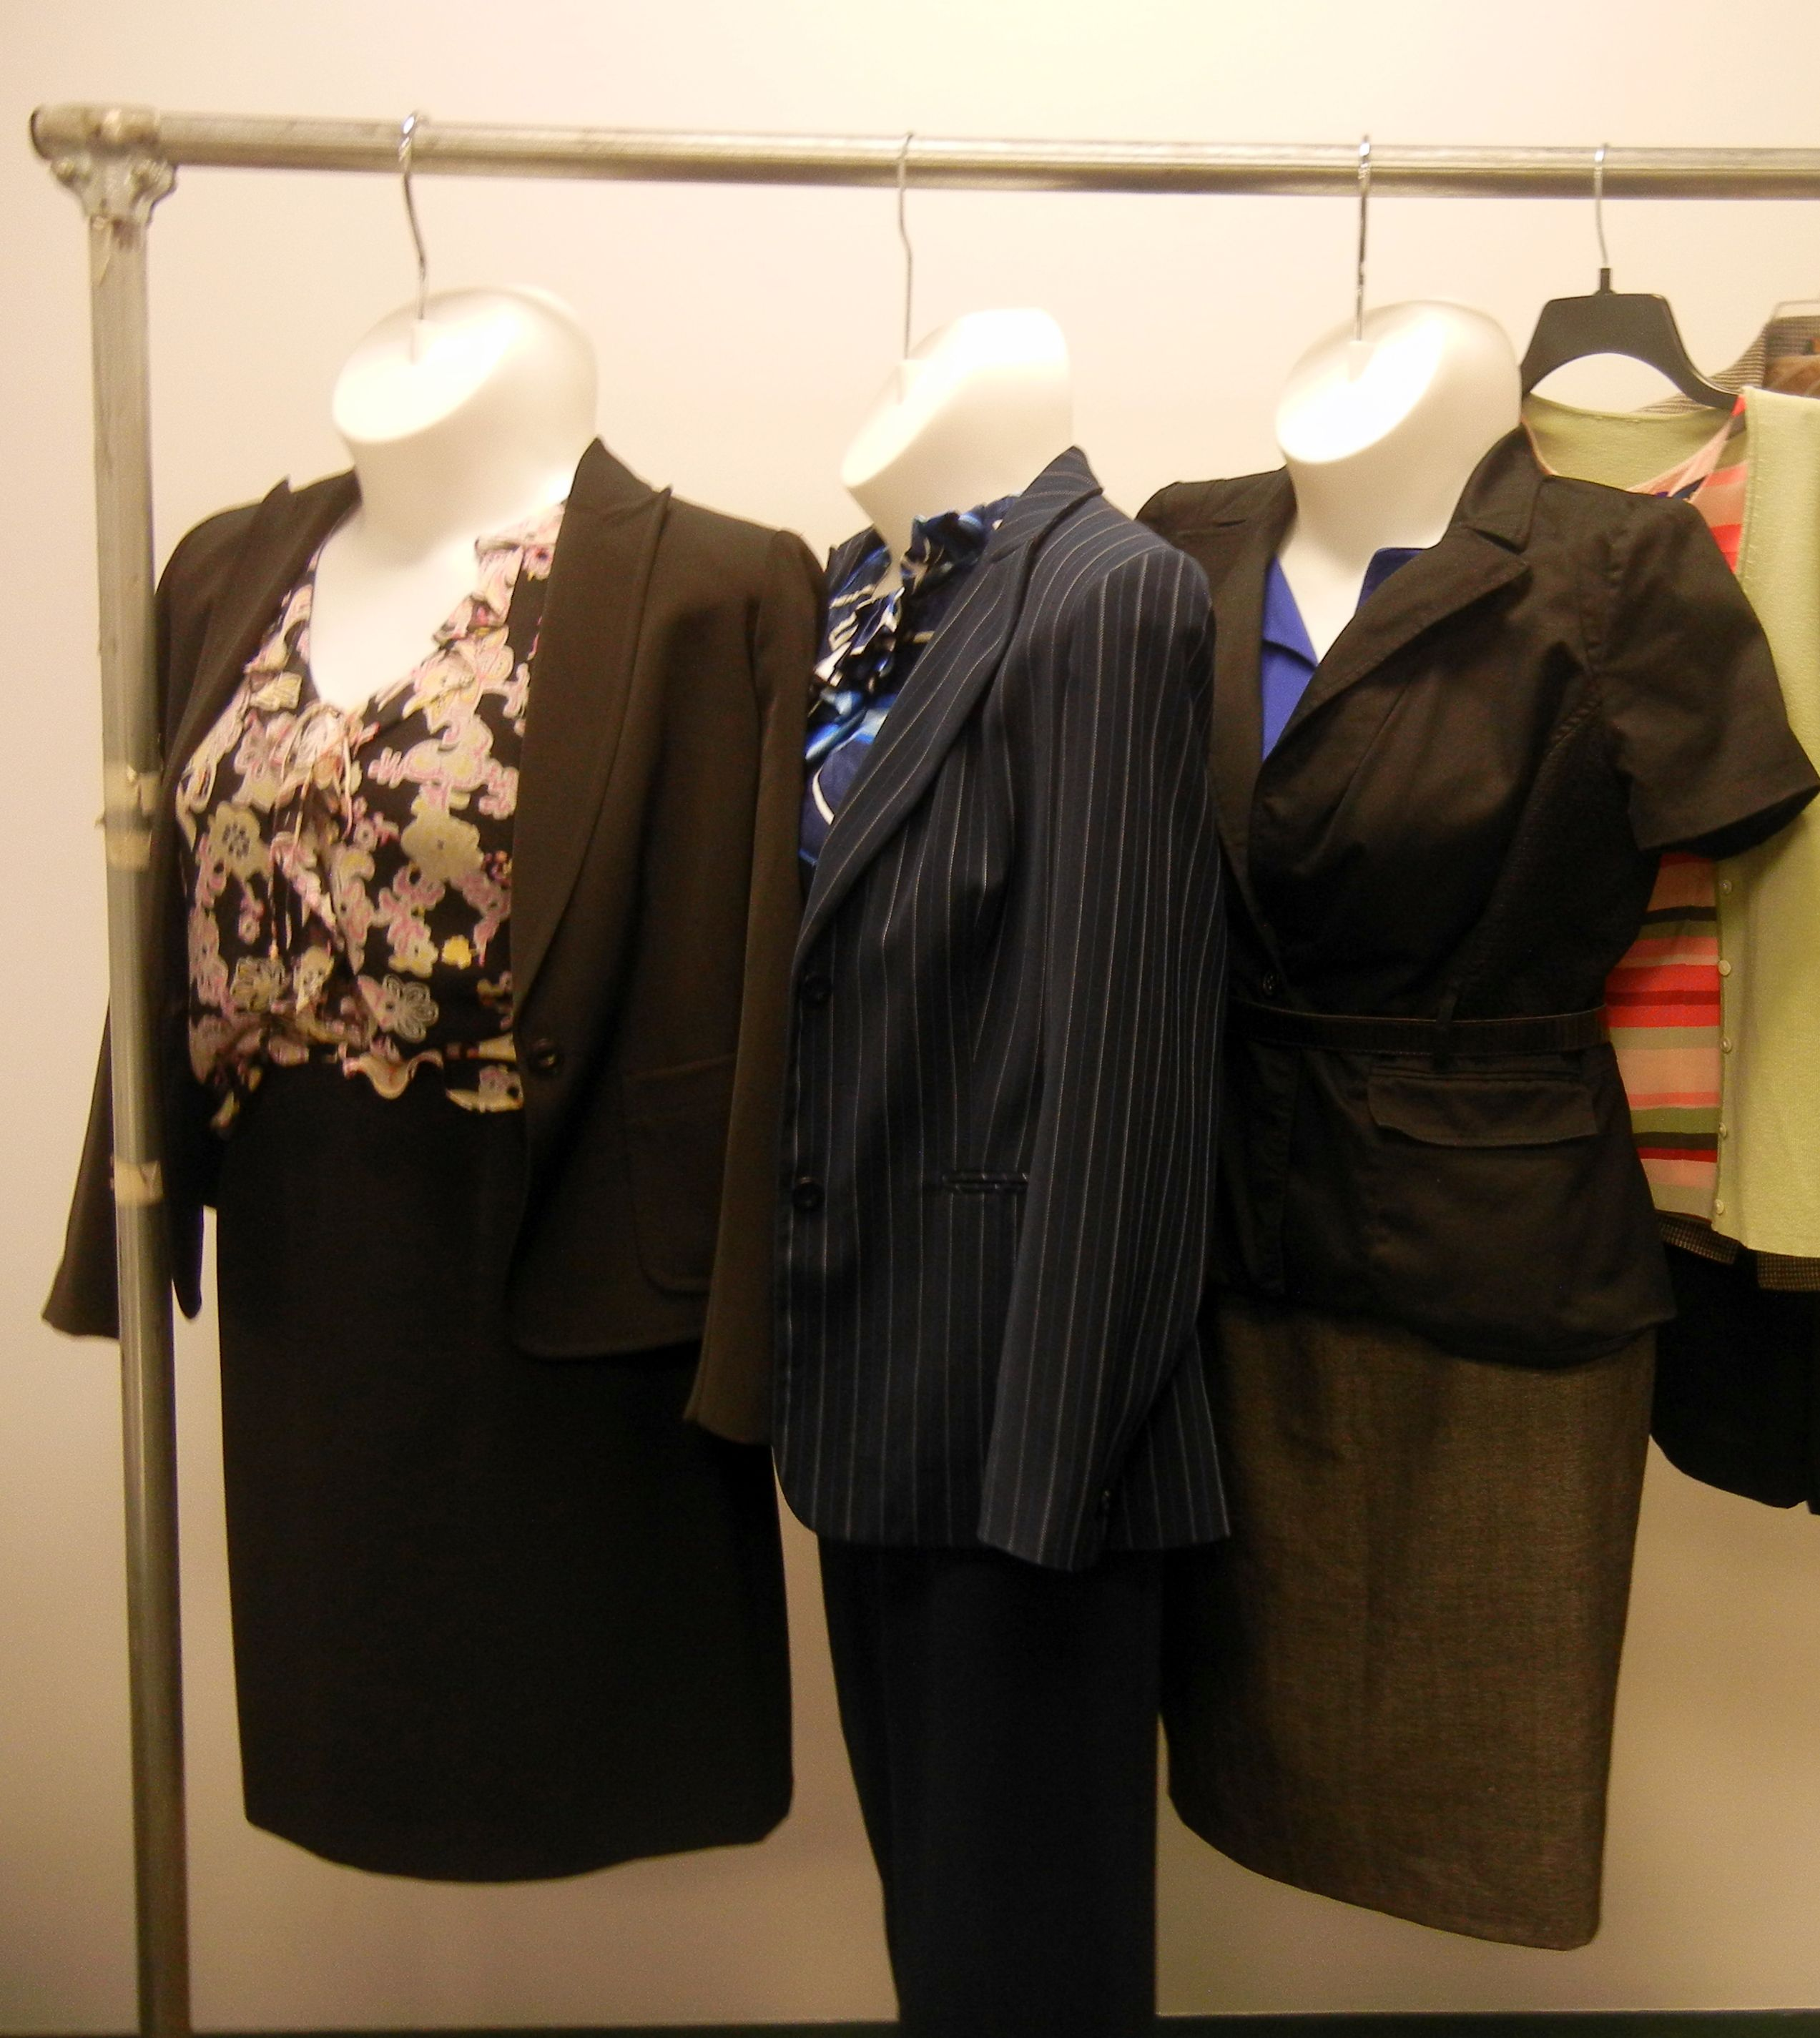 Ready for that interview! Build a professional wardrobe at goodwillwny.org